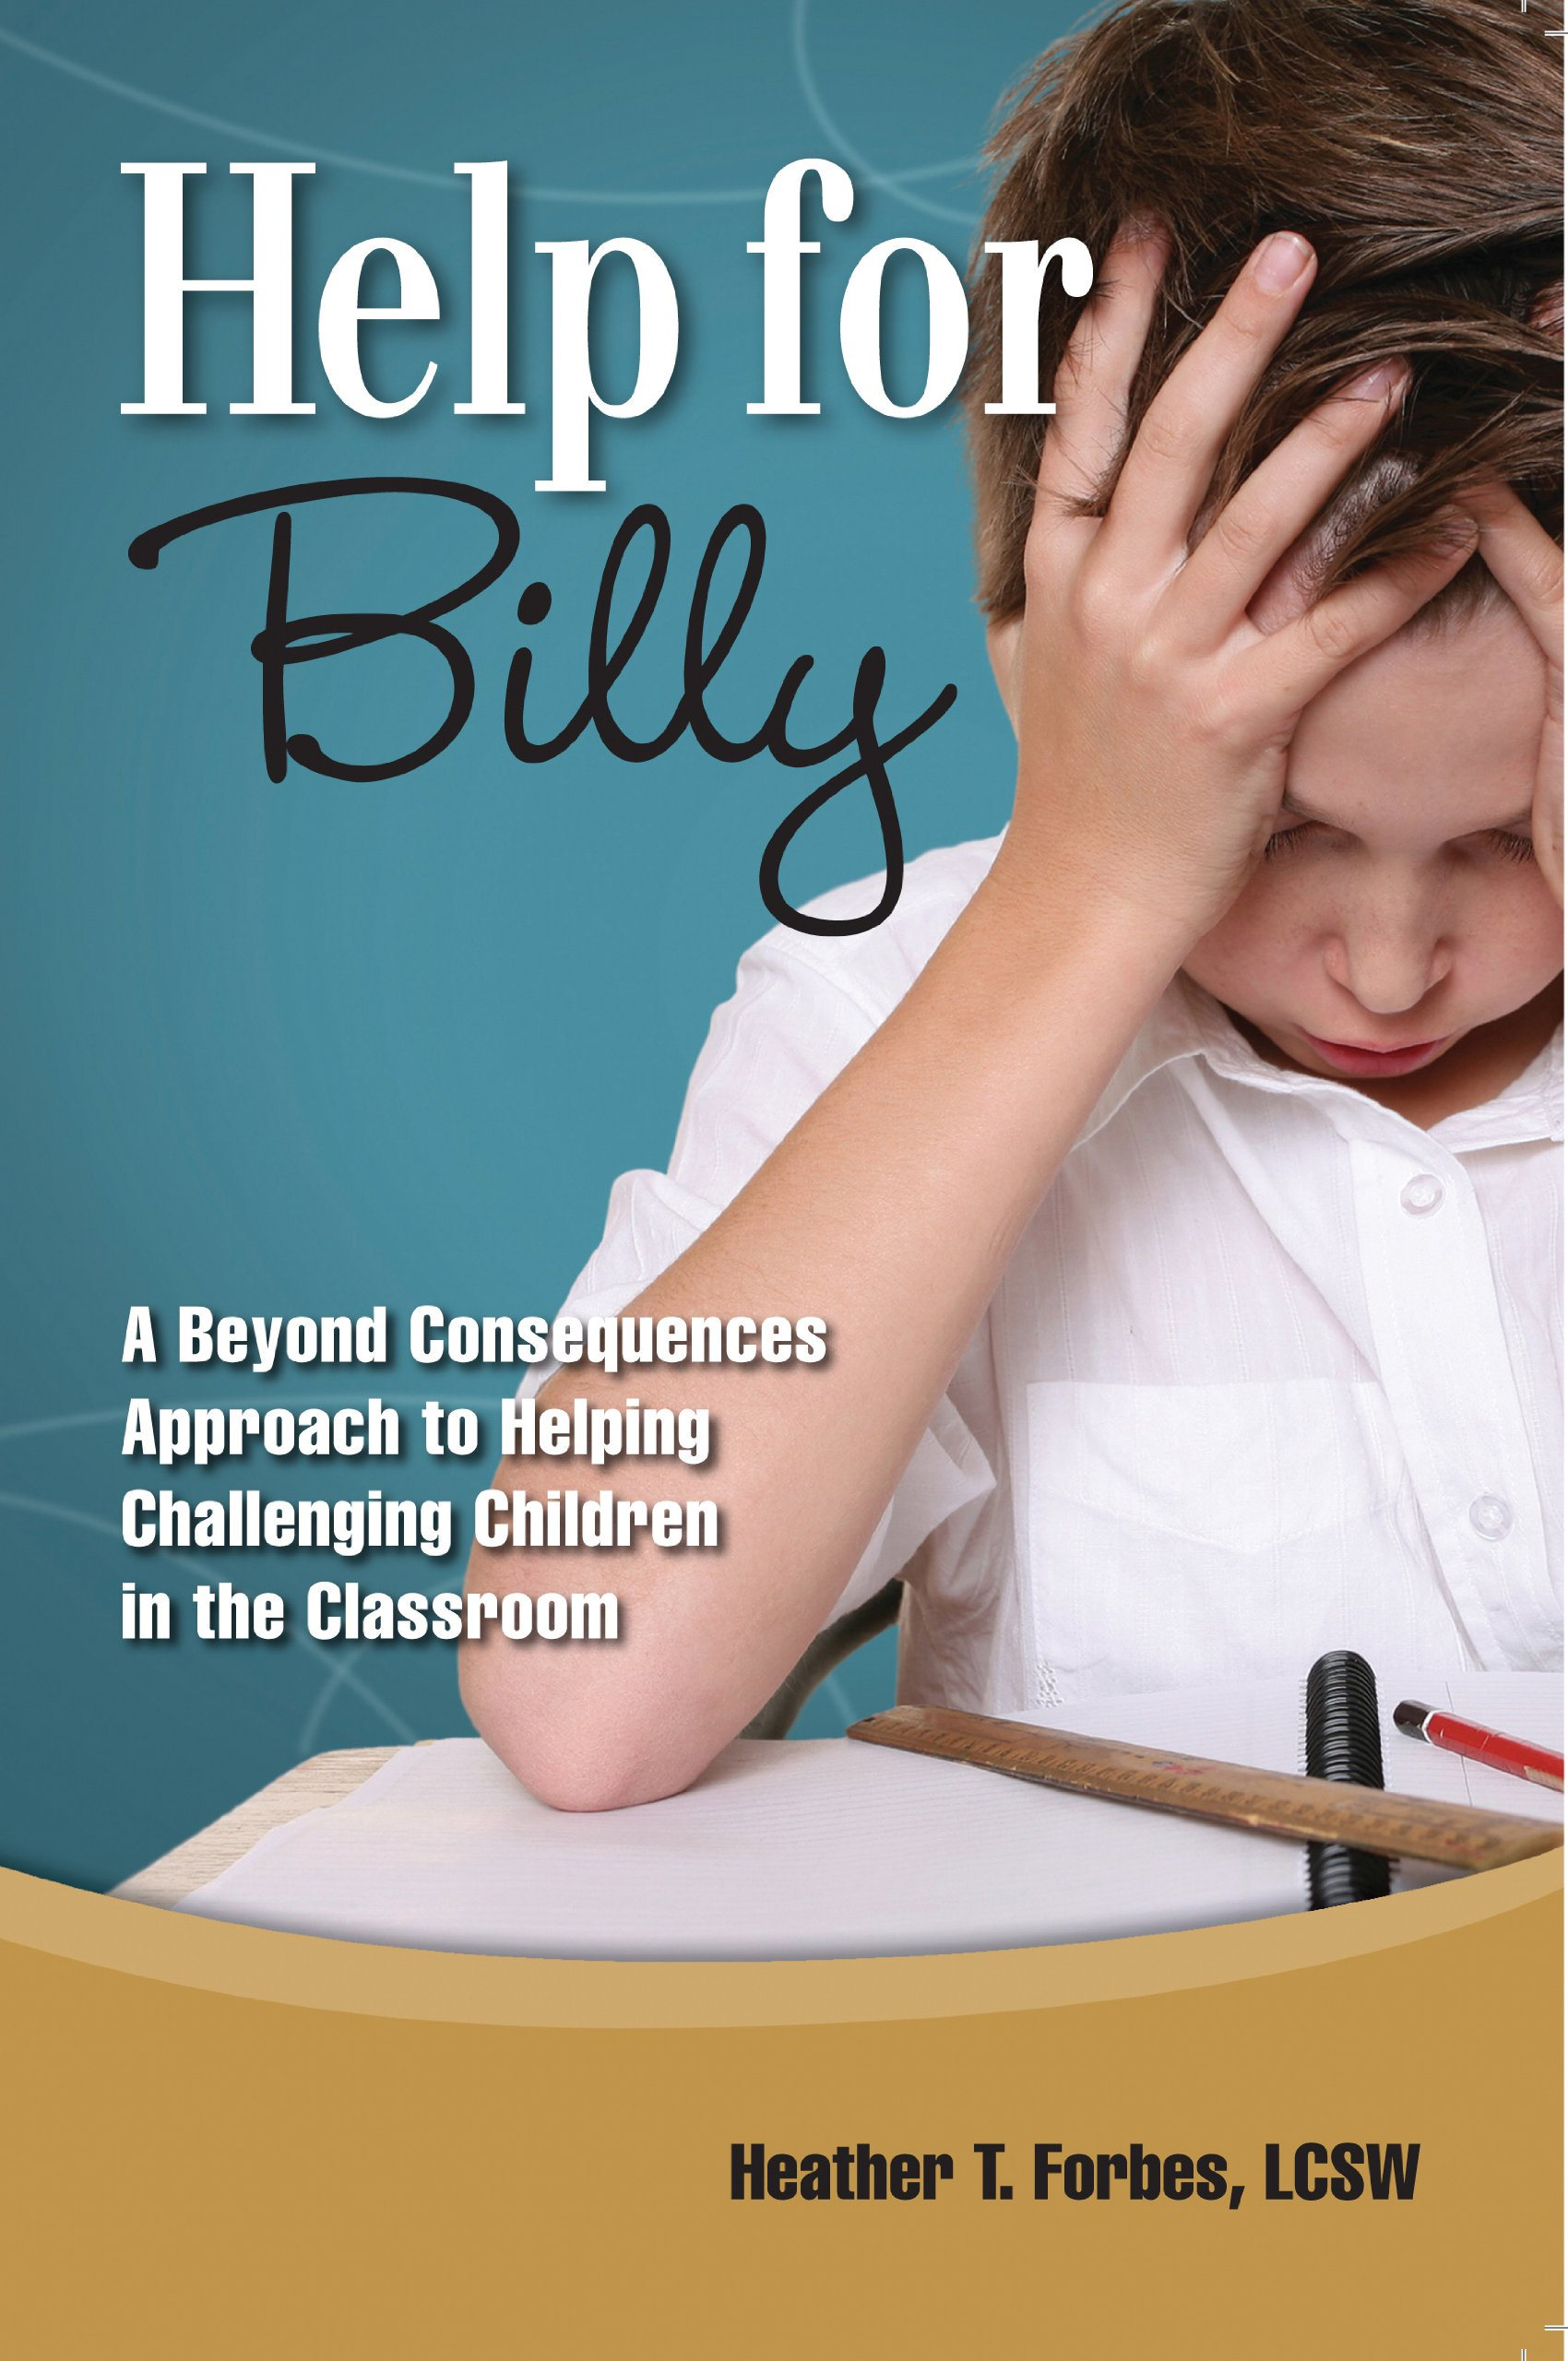 Help Billy Consequences Challenging Classroom product image